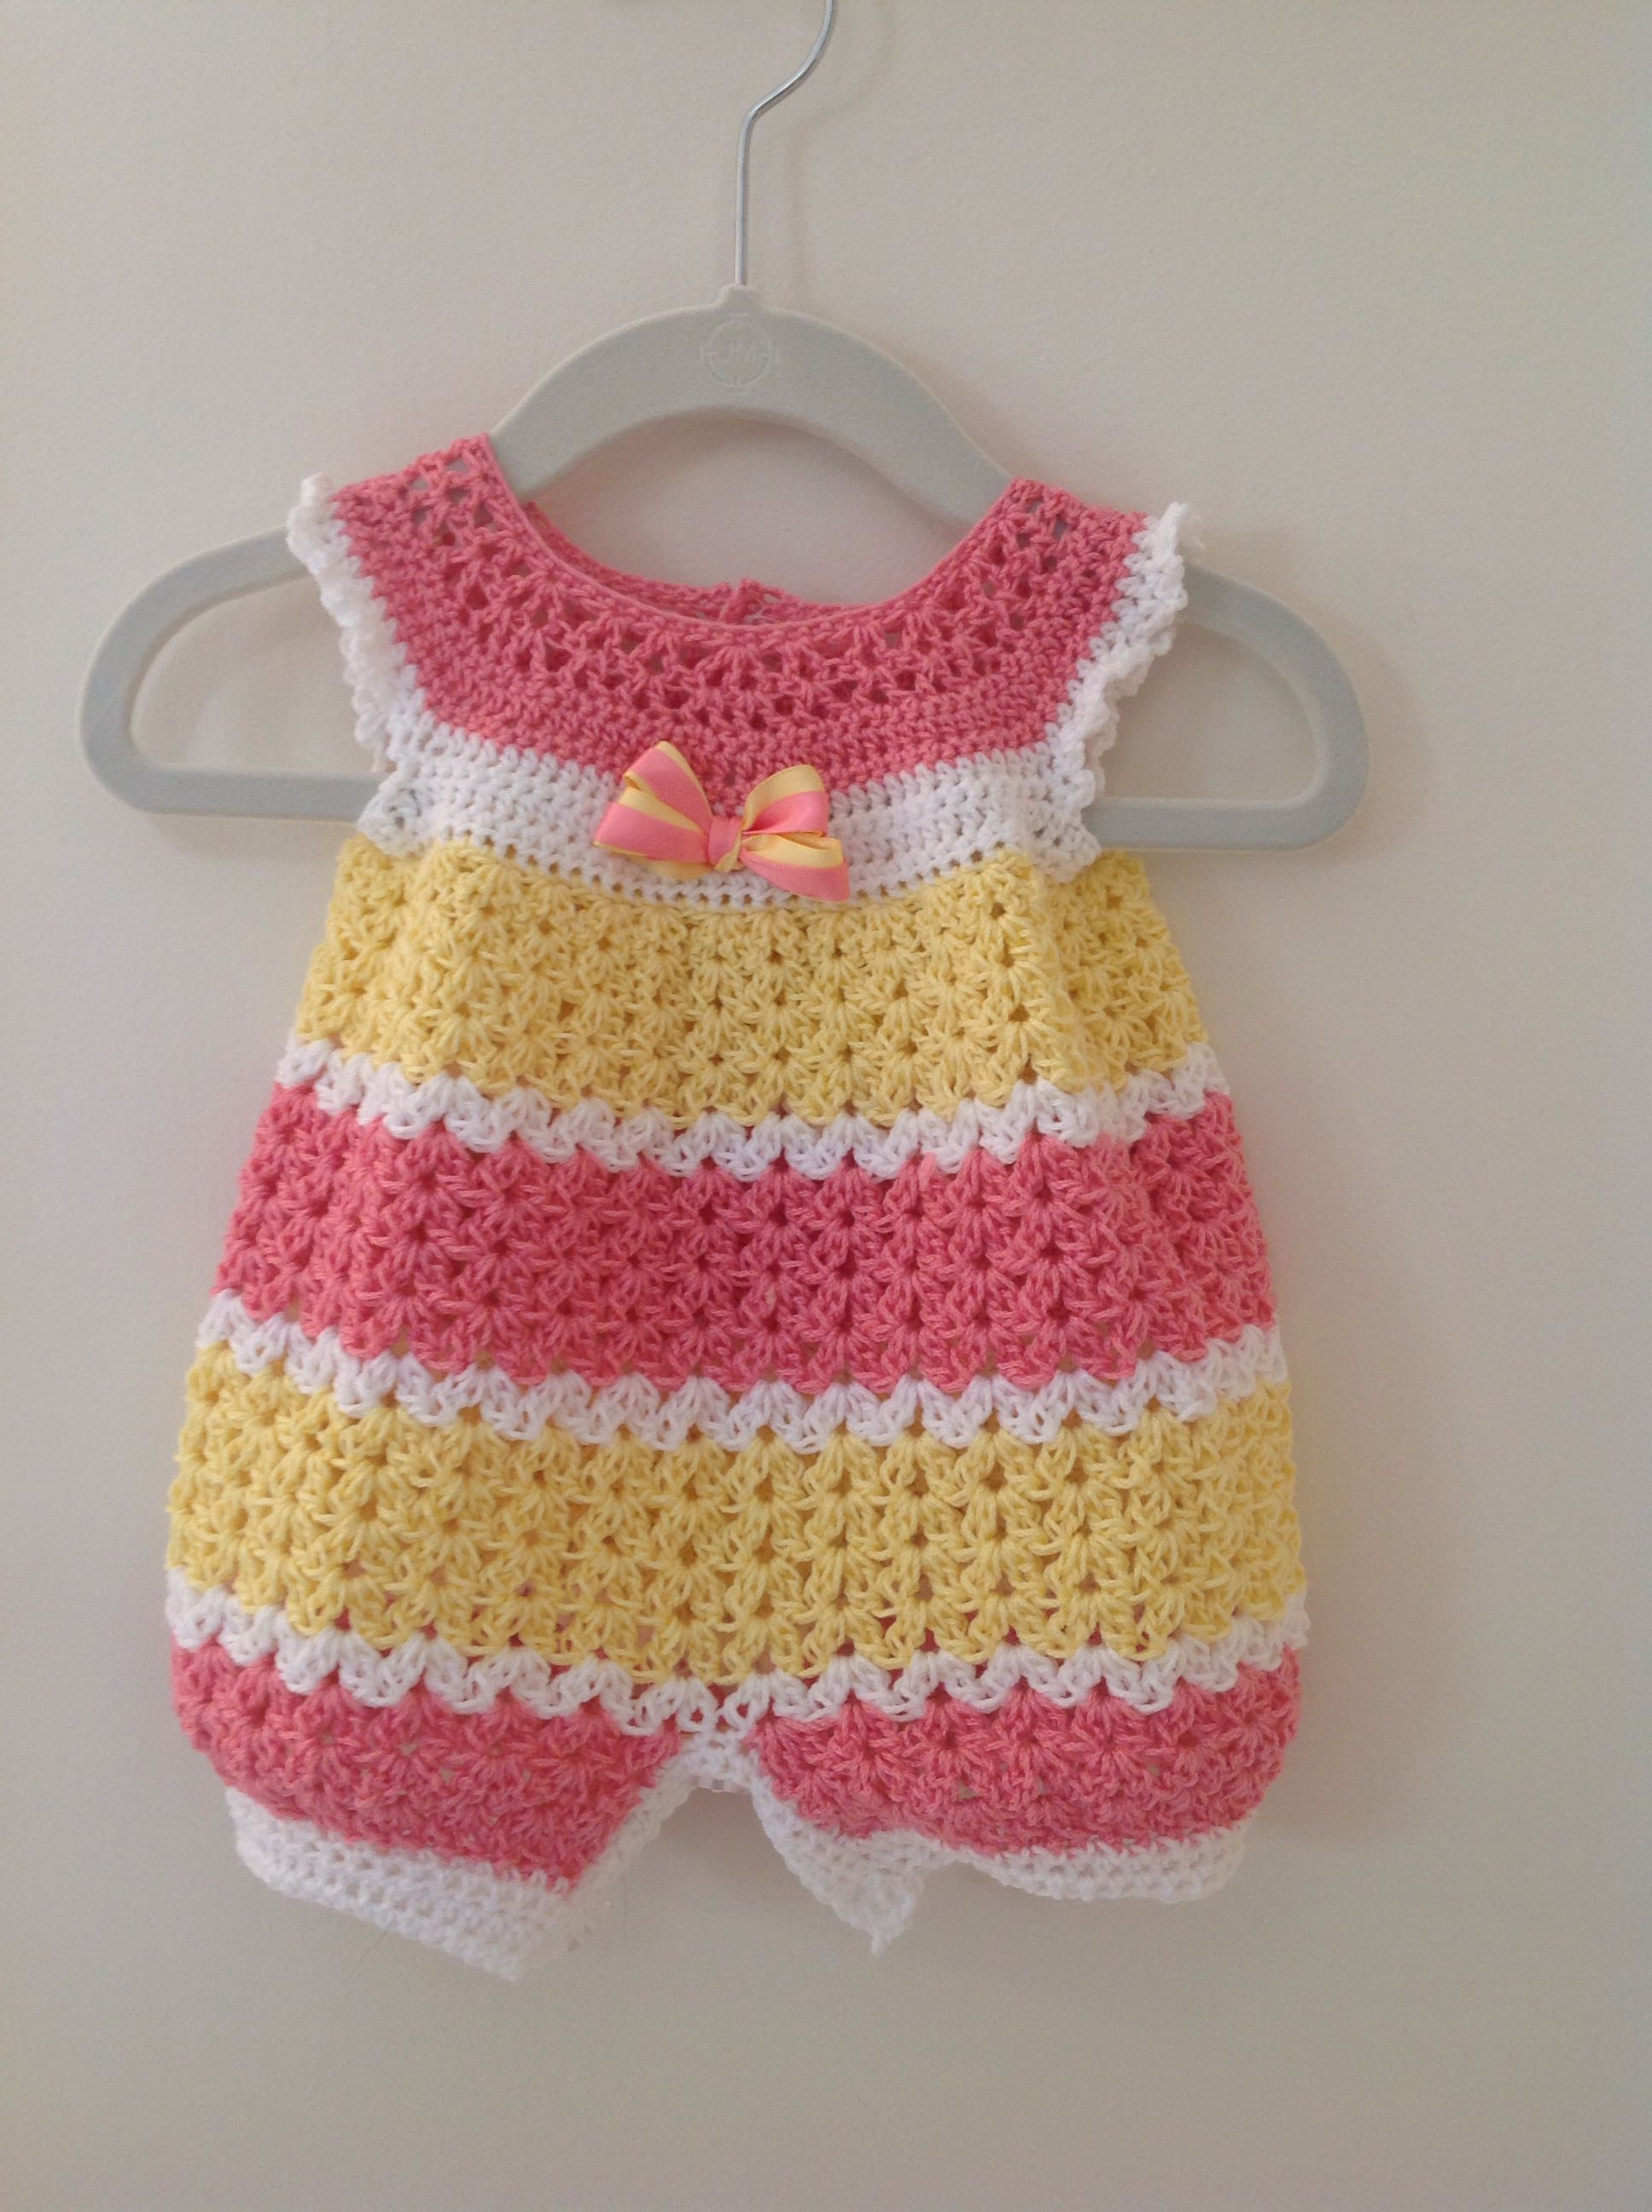 Crochet infant romper 0-3 months - Baby crochet patterns are so ...